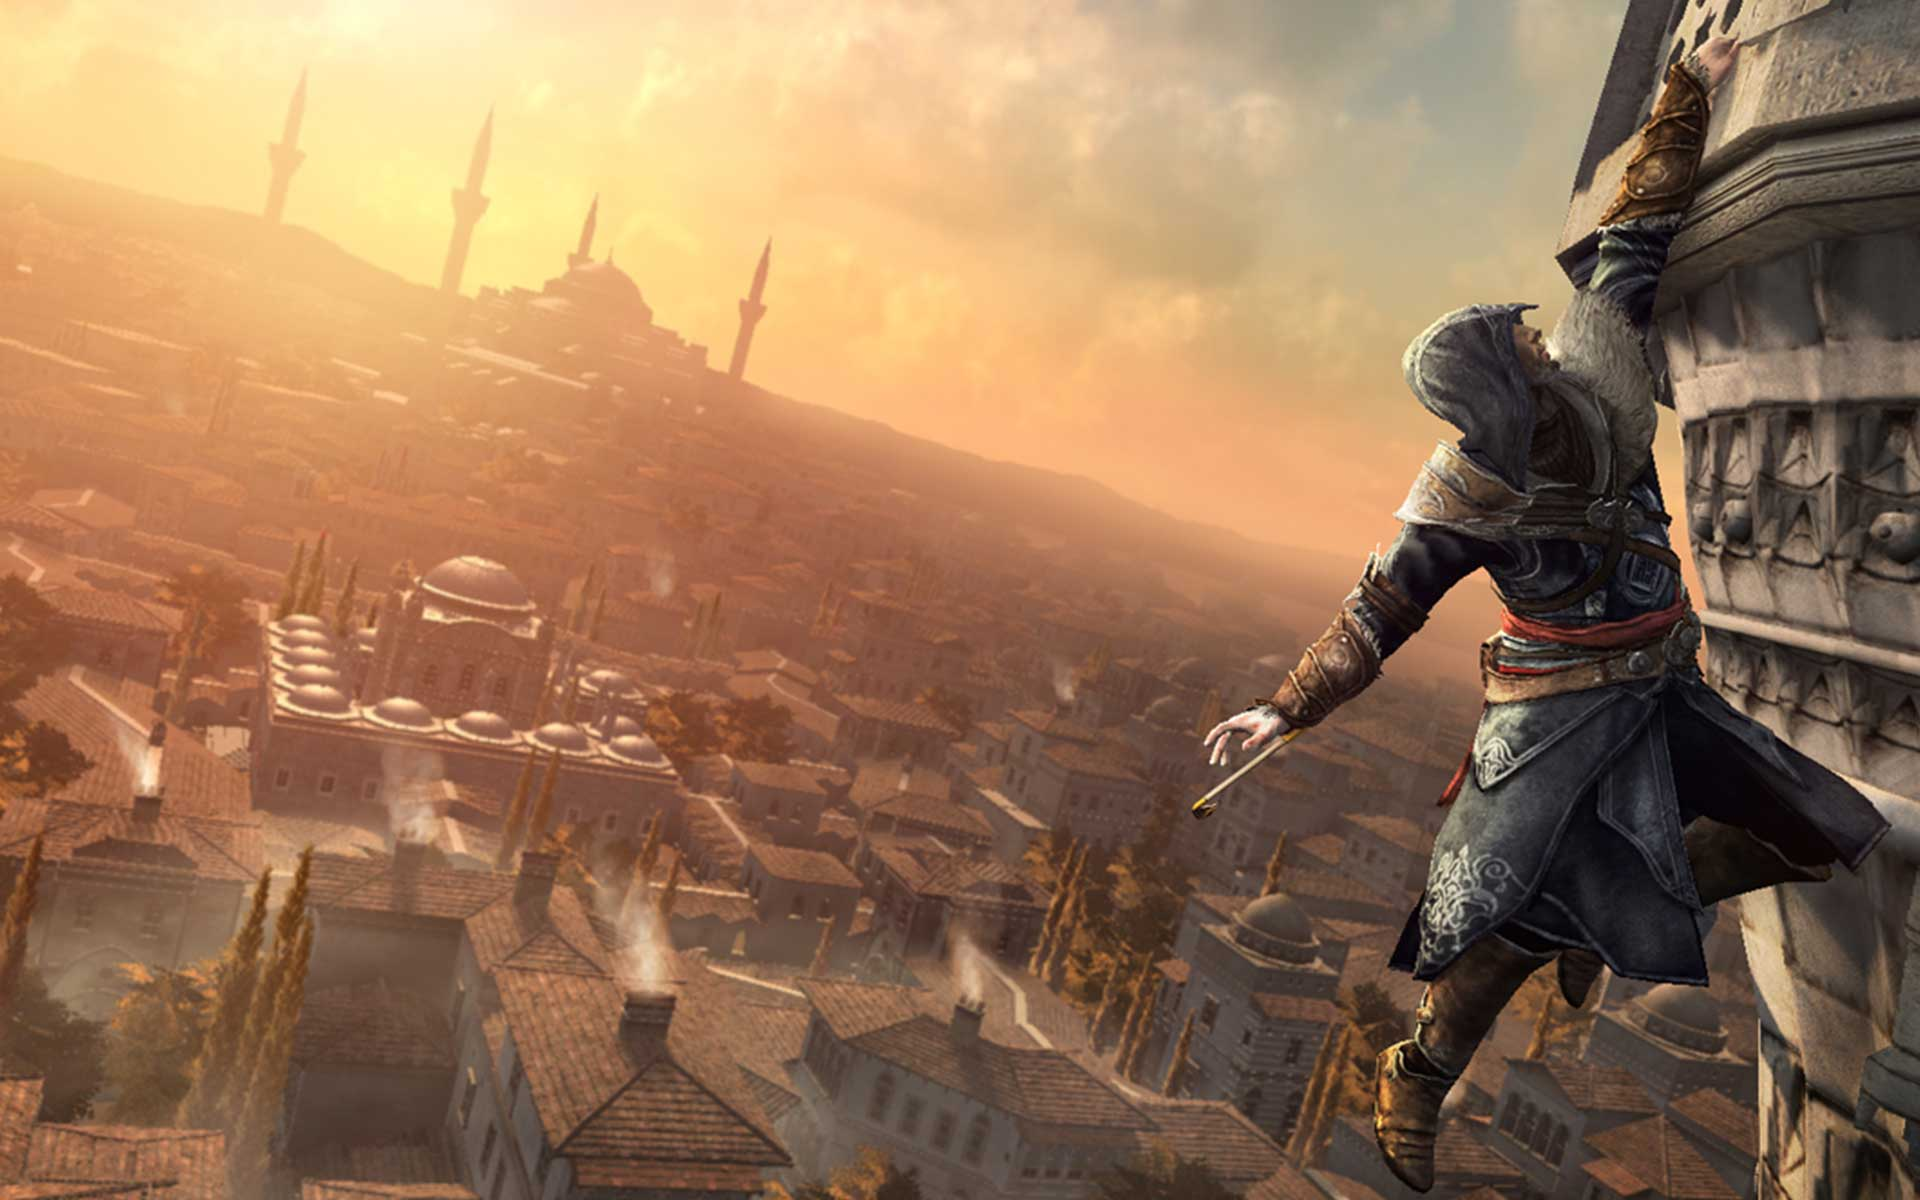 Ubisoft - Assassin's Creed Revelations